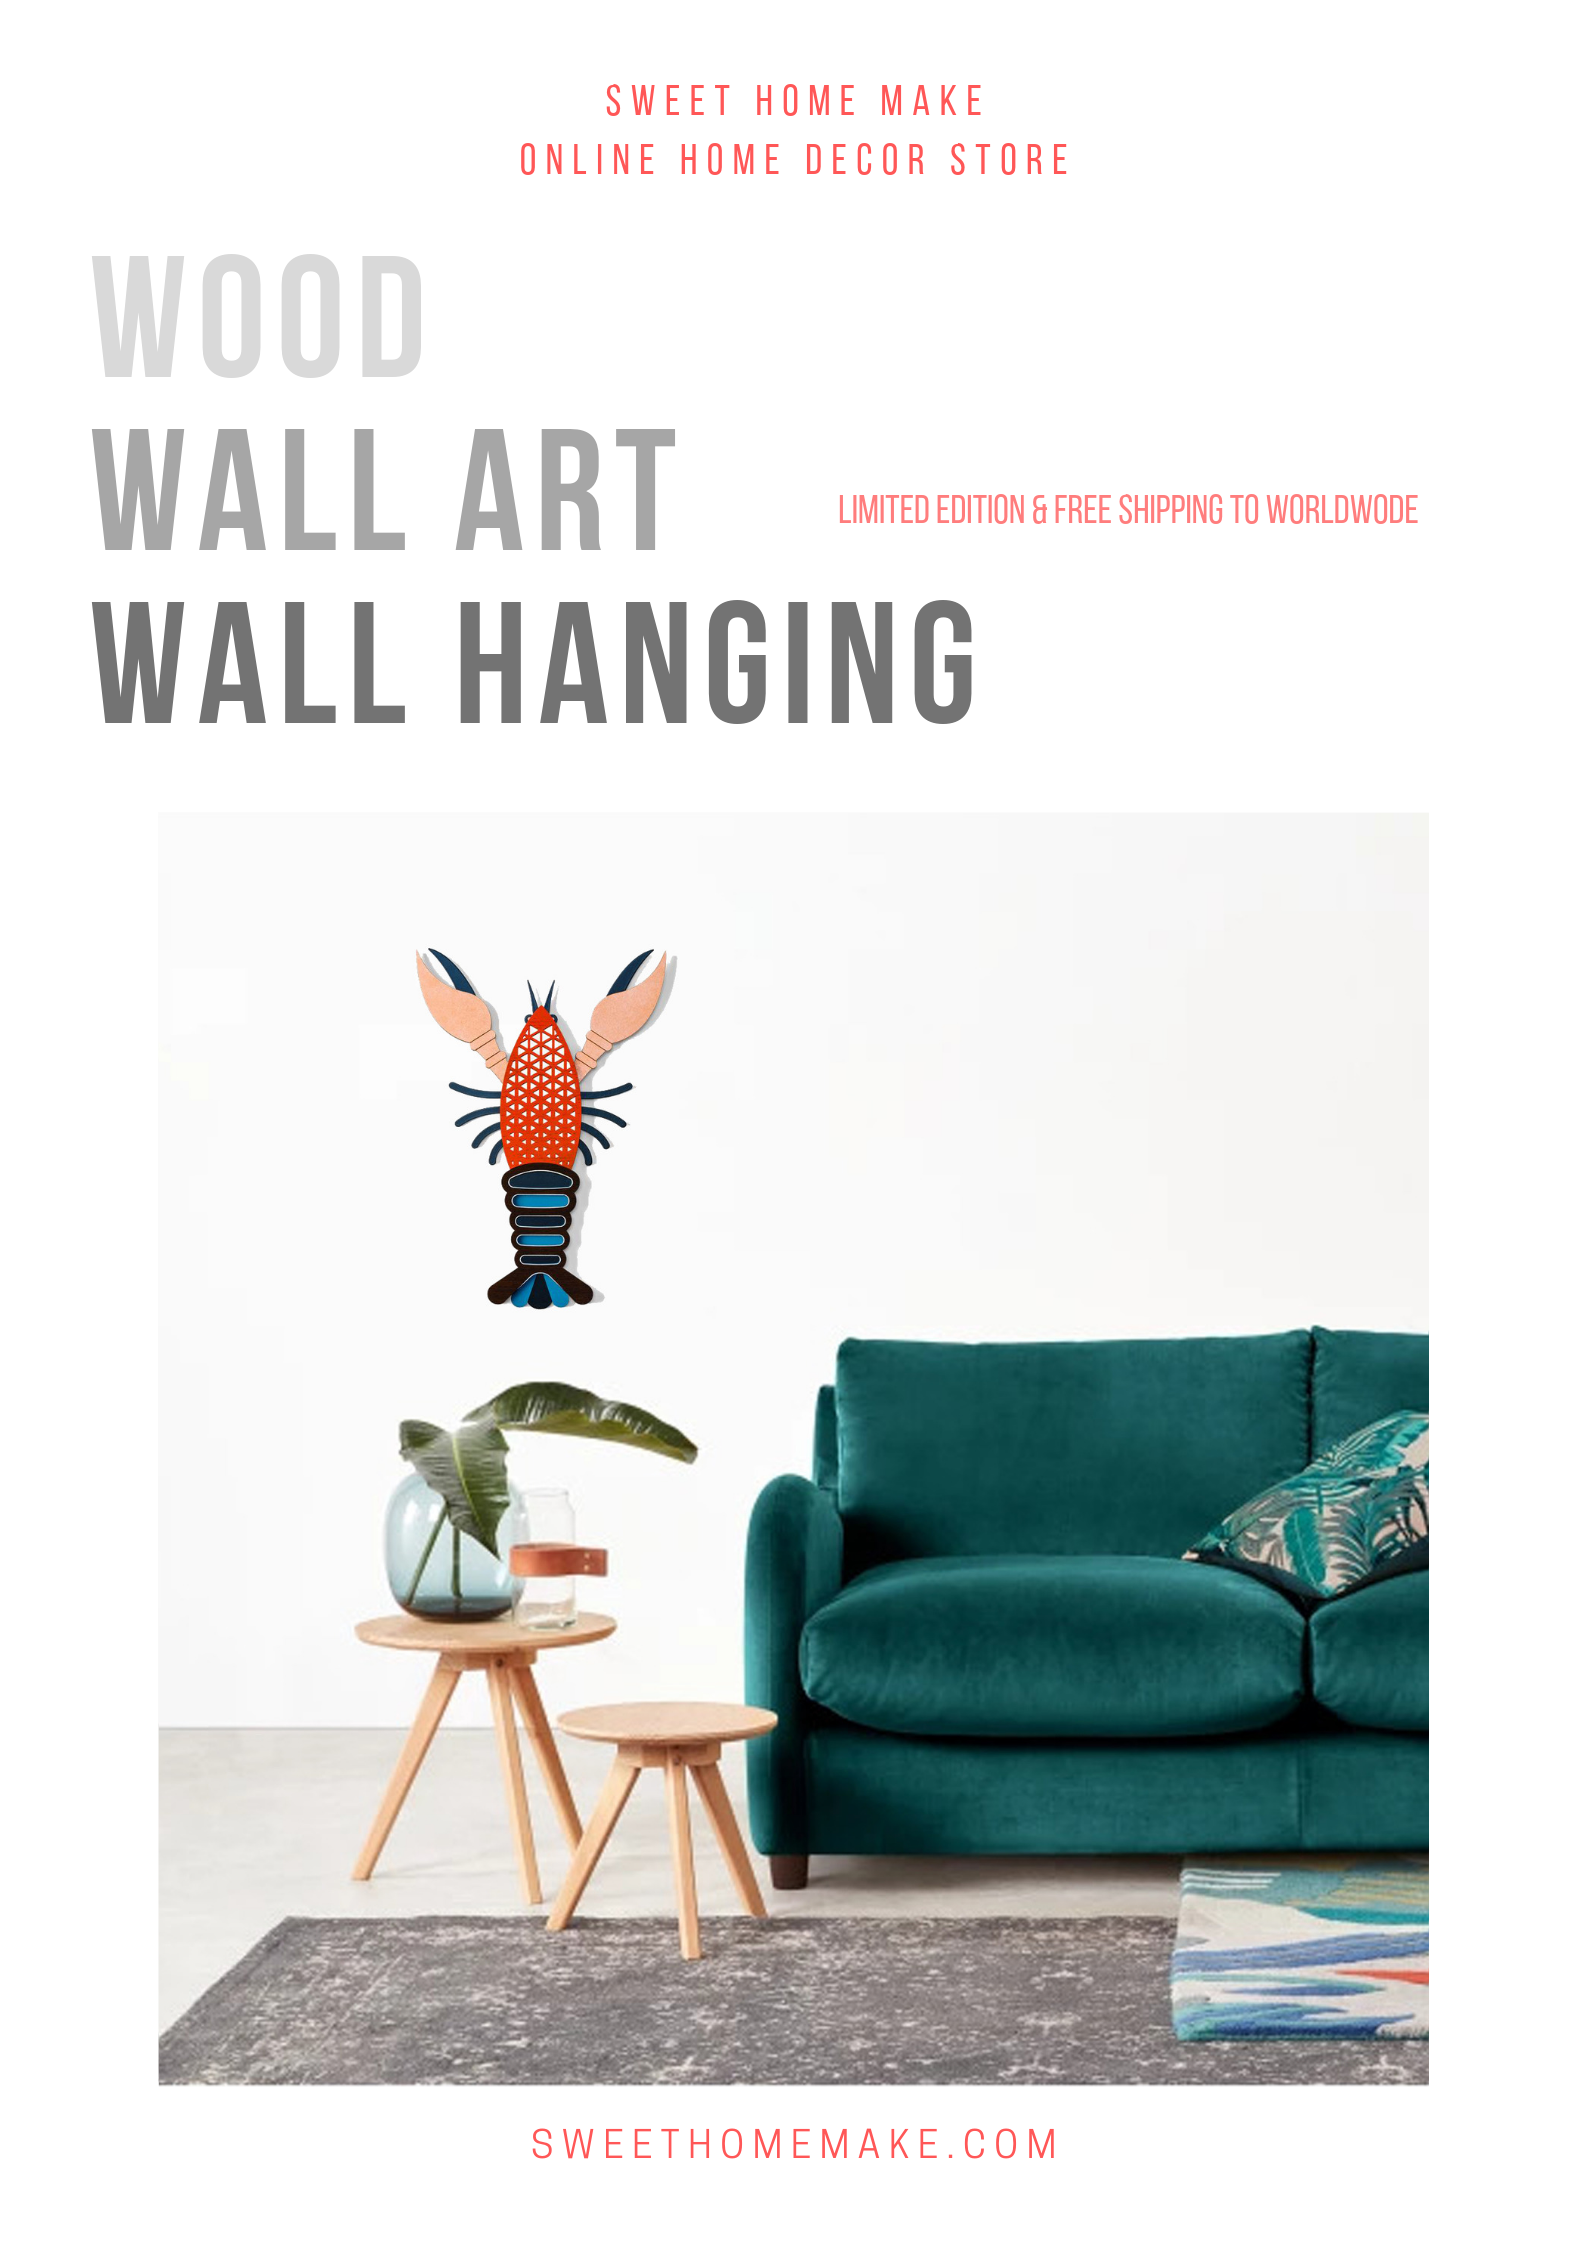 Wood Wall Art with Wall Hanging Lobster